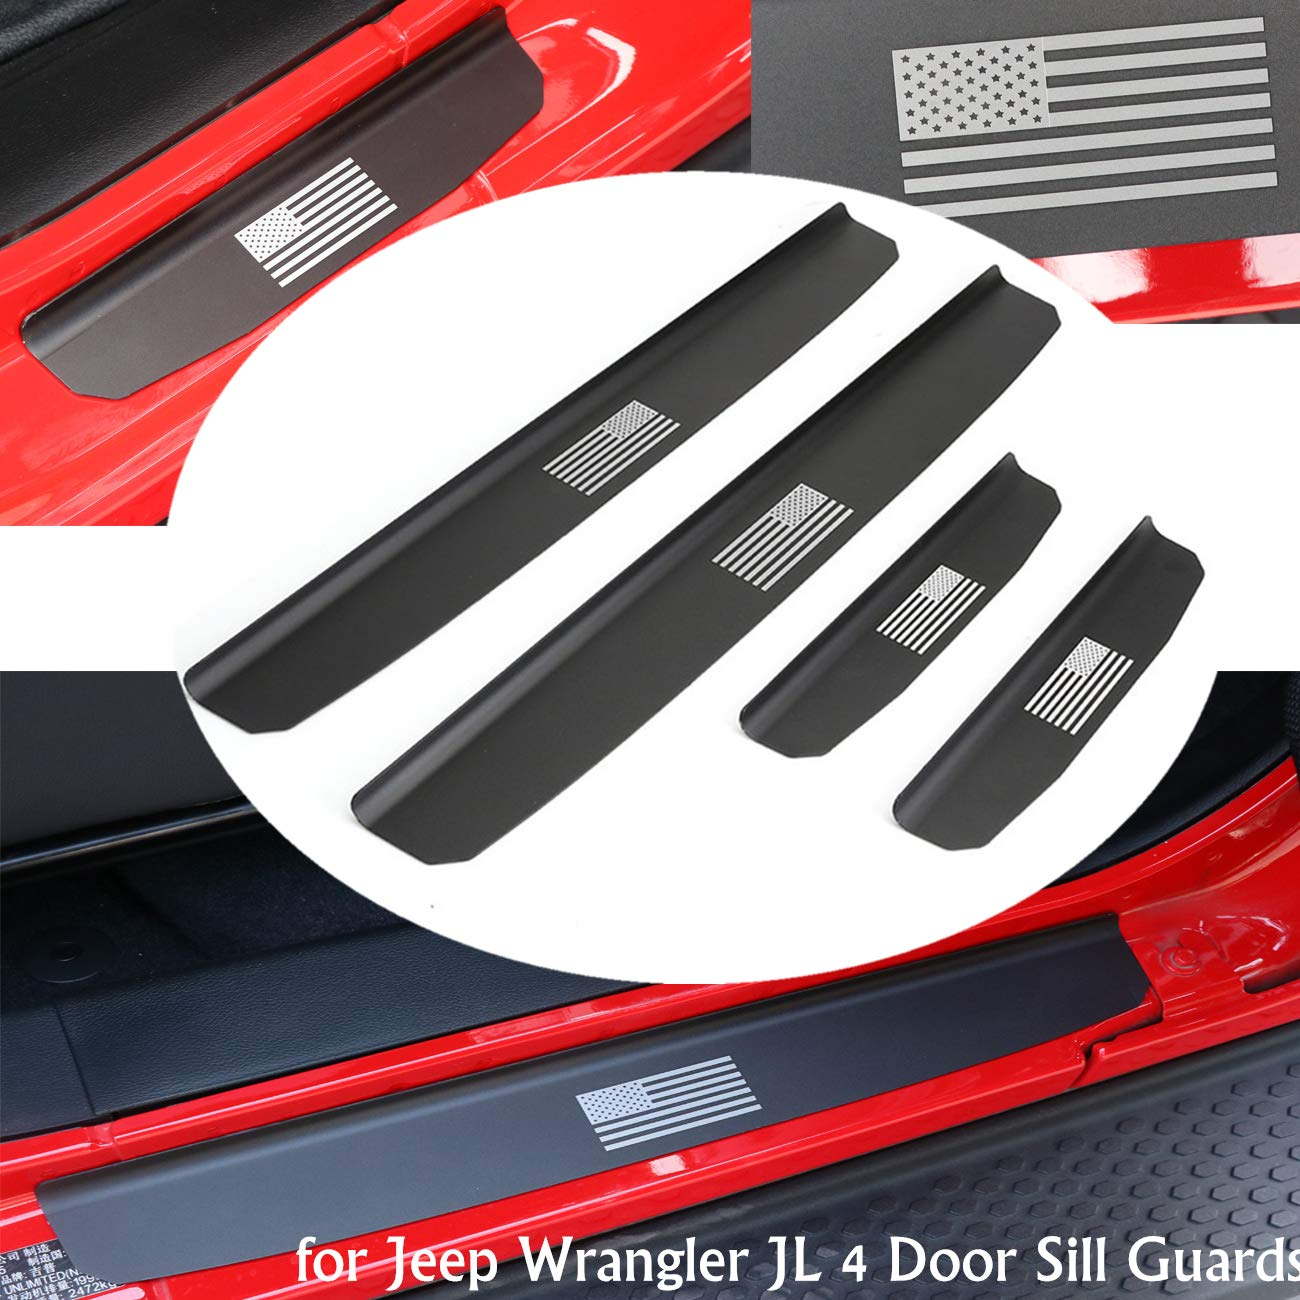 for 2018-up Jeep Wrangler JL 4 Door Sill Guards Aluminium AUFER Door Entry Guards Step Sill Guard Scuff Plate Protectors